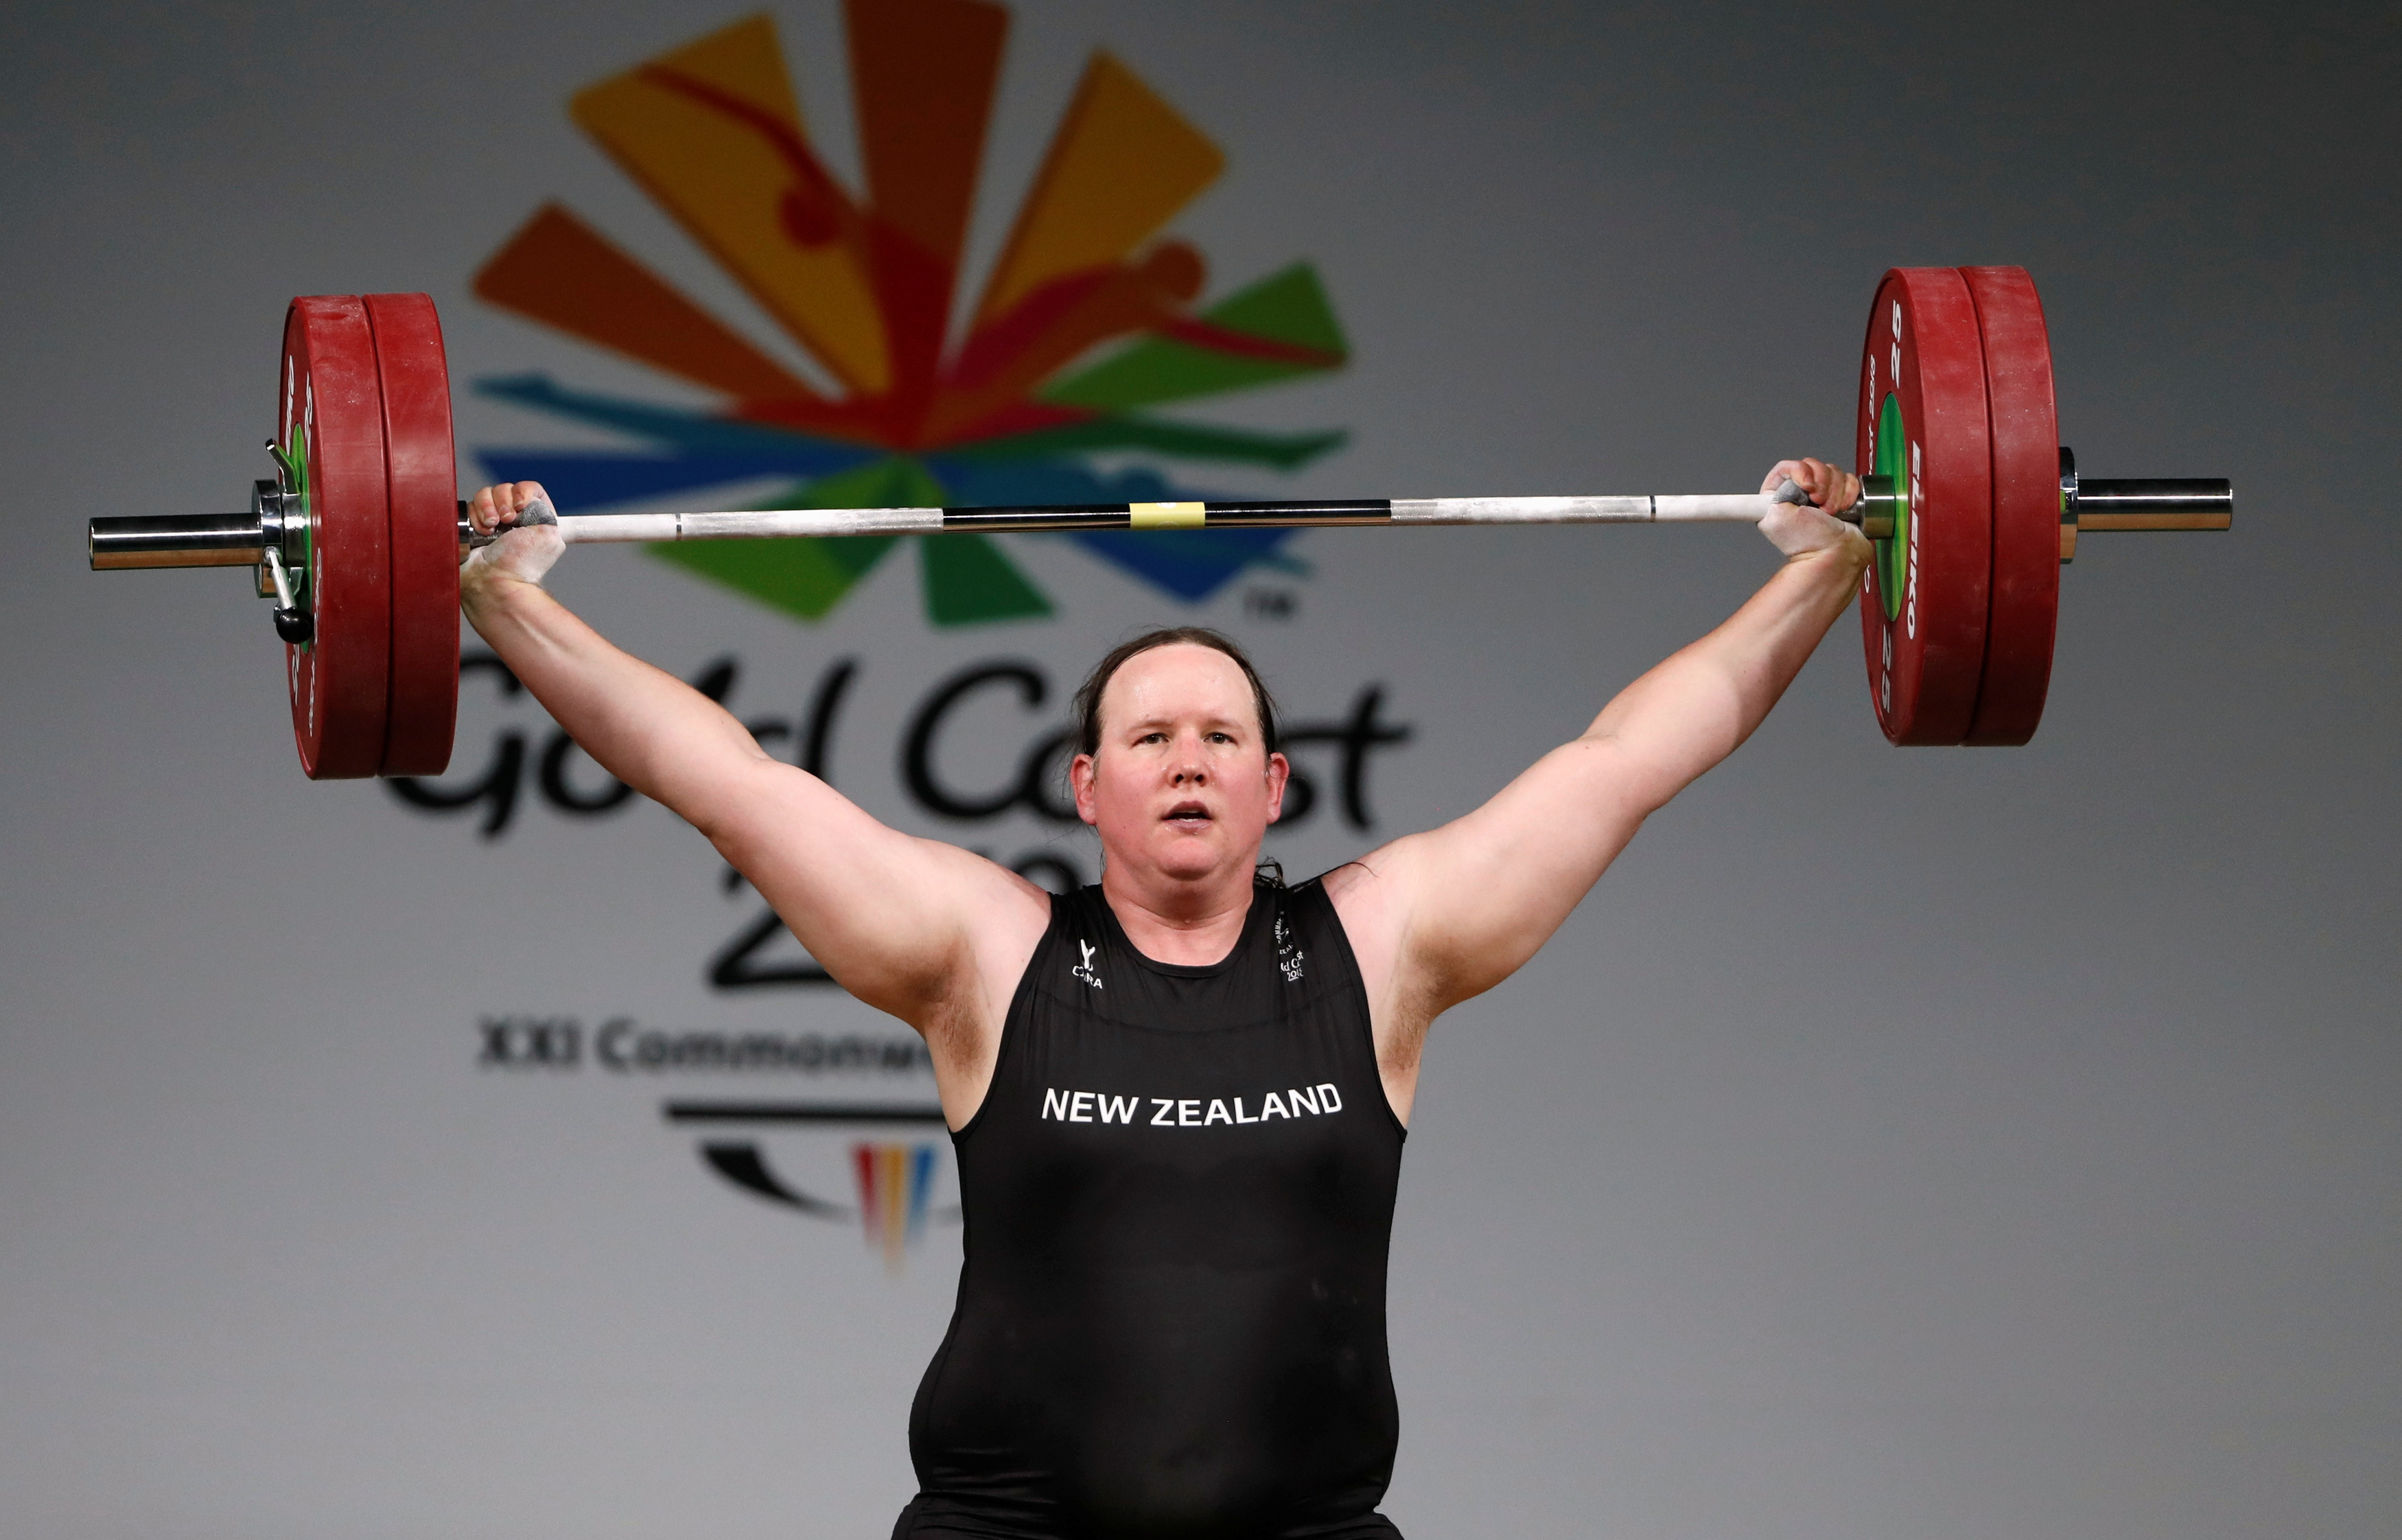 NZ weightlifter Hubbard to become first transgender athlete to compete at Games - Reuters